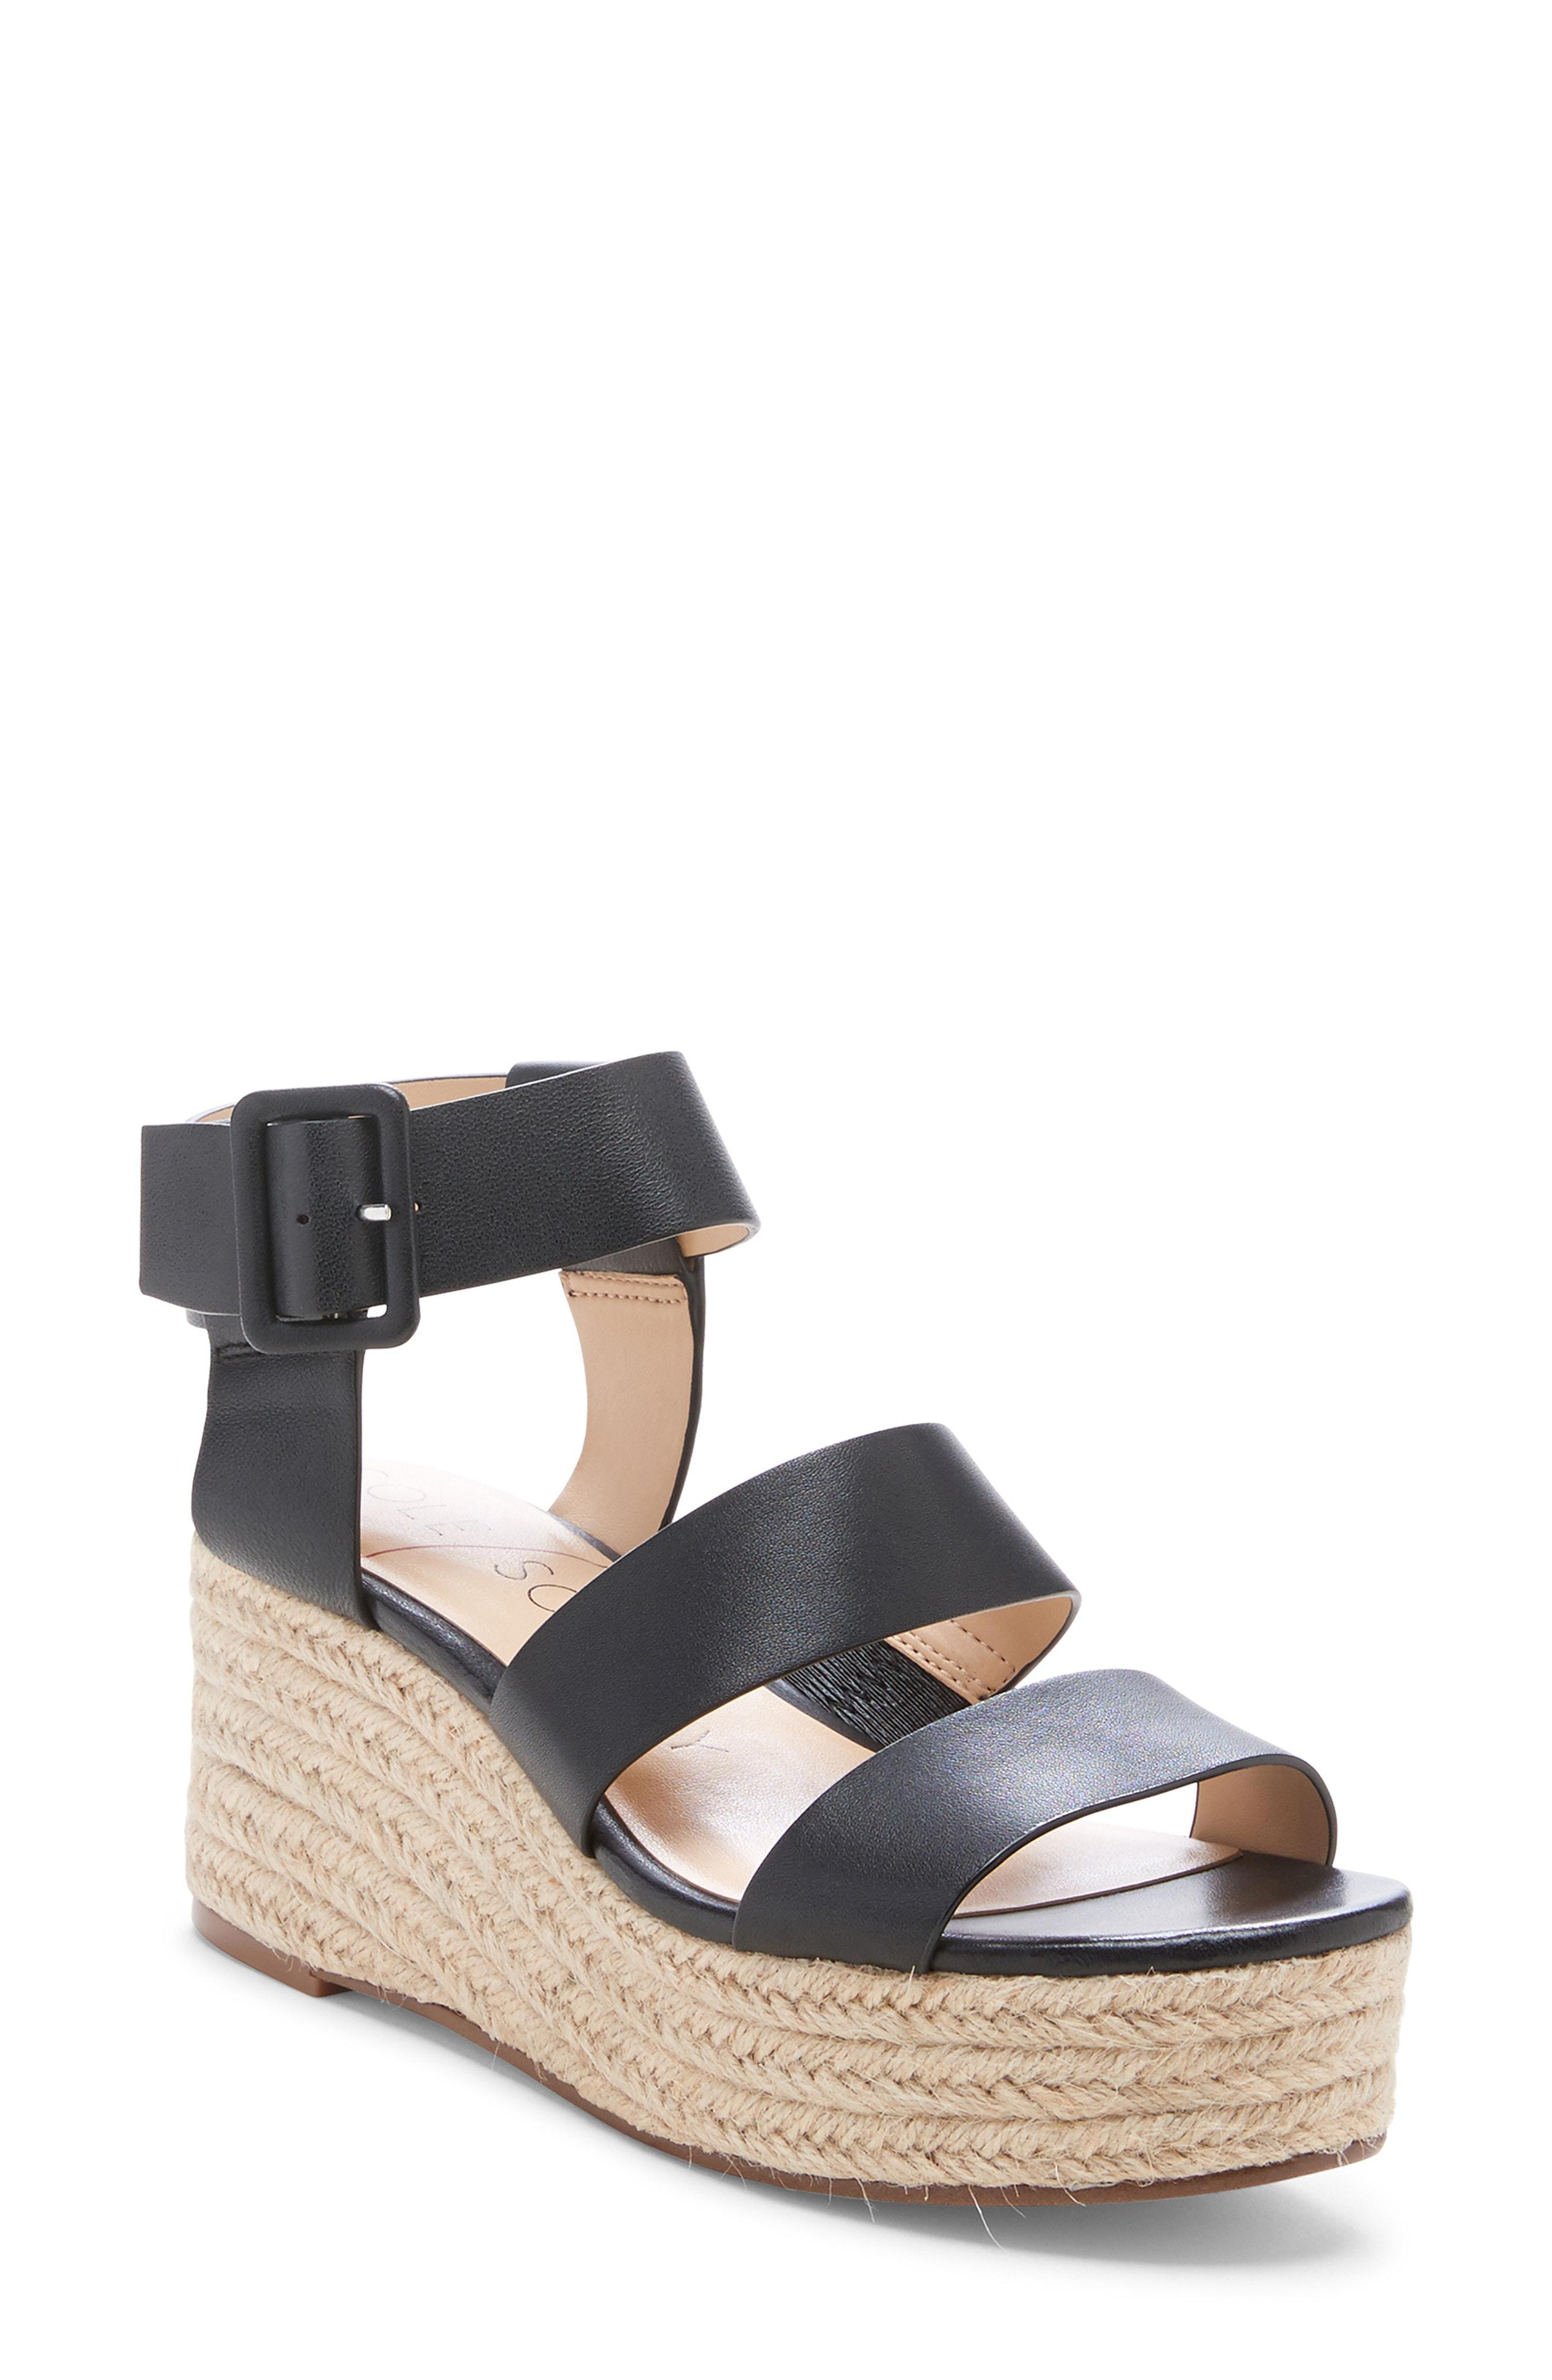 56bcd5ceb4c Lyst - Sole Society Anisa Espadrille Wedge Sandal in Blue